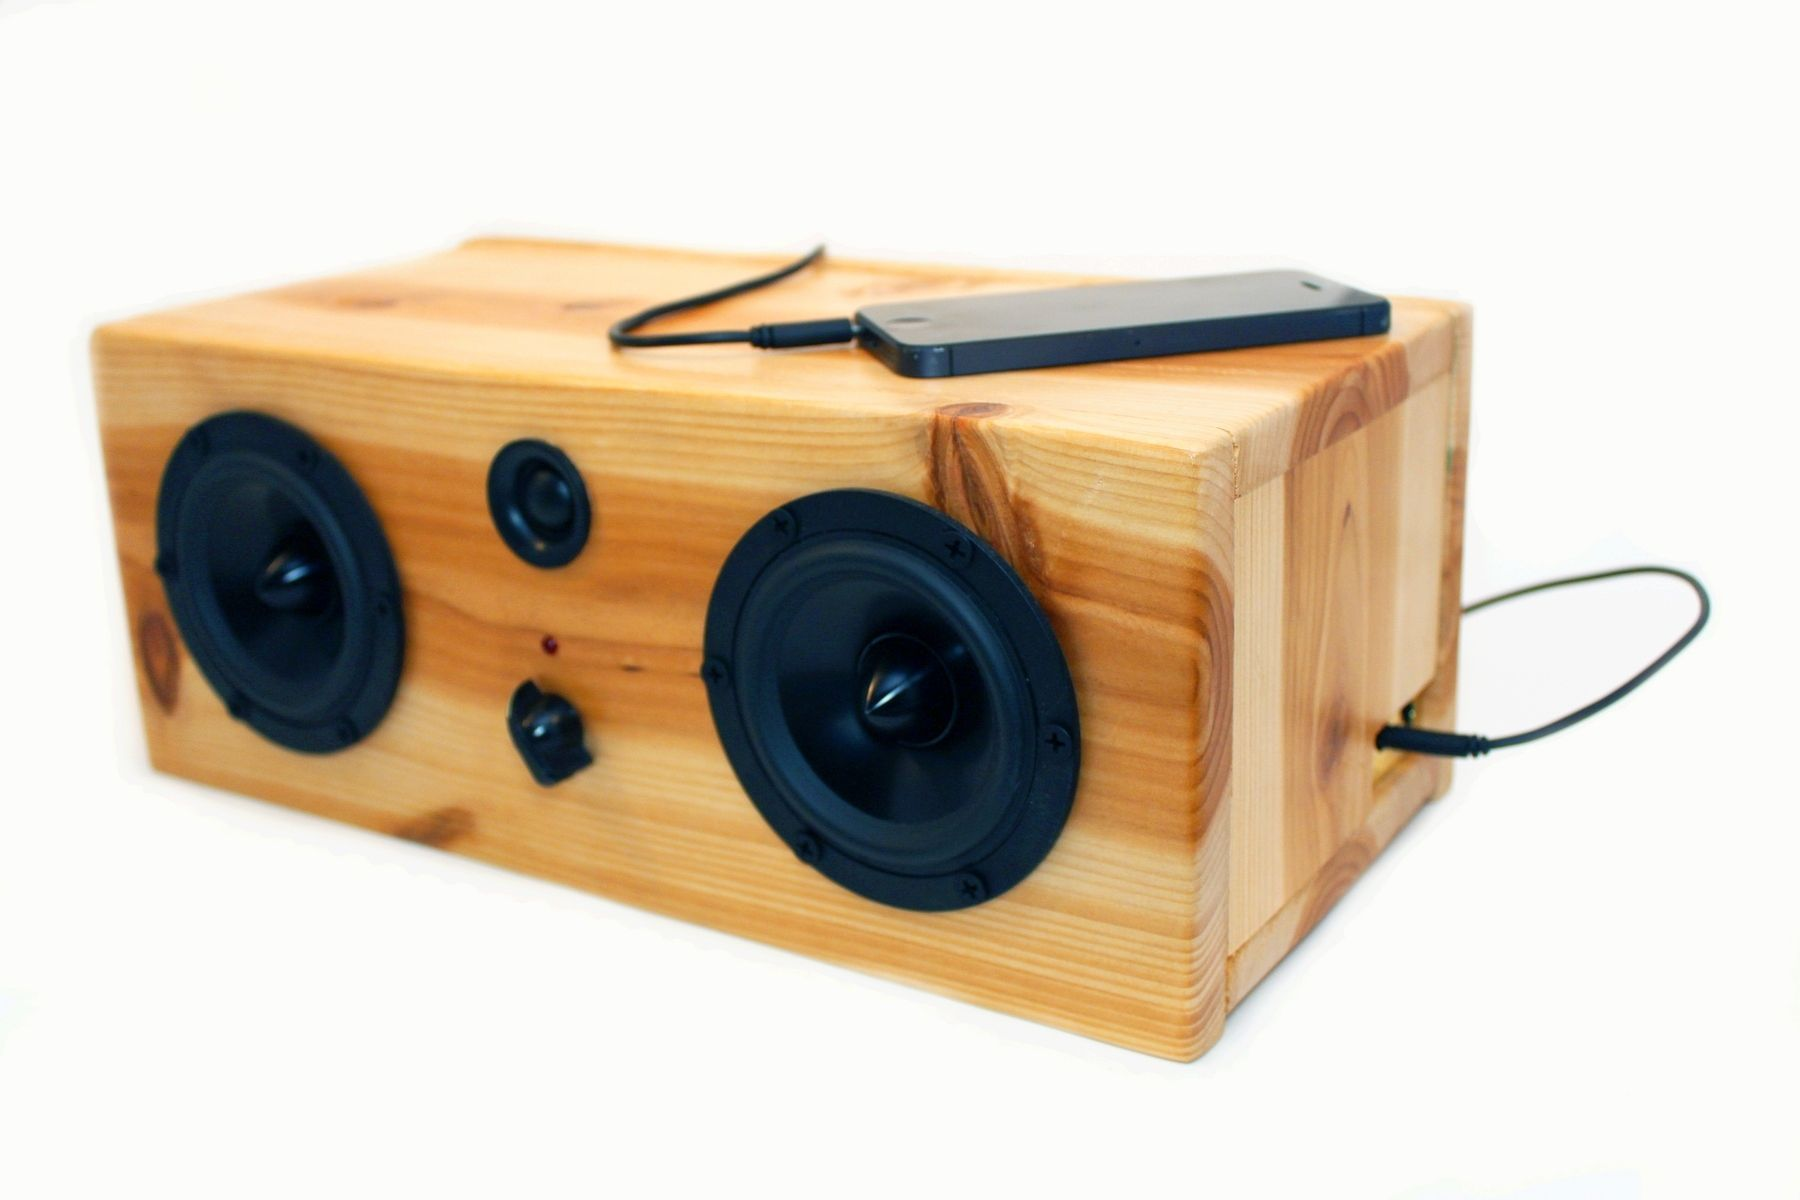 Custom Made Bluetooth Speaker System Big Pine Box Wood